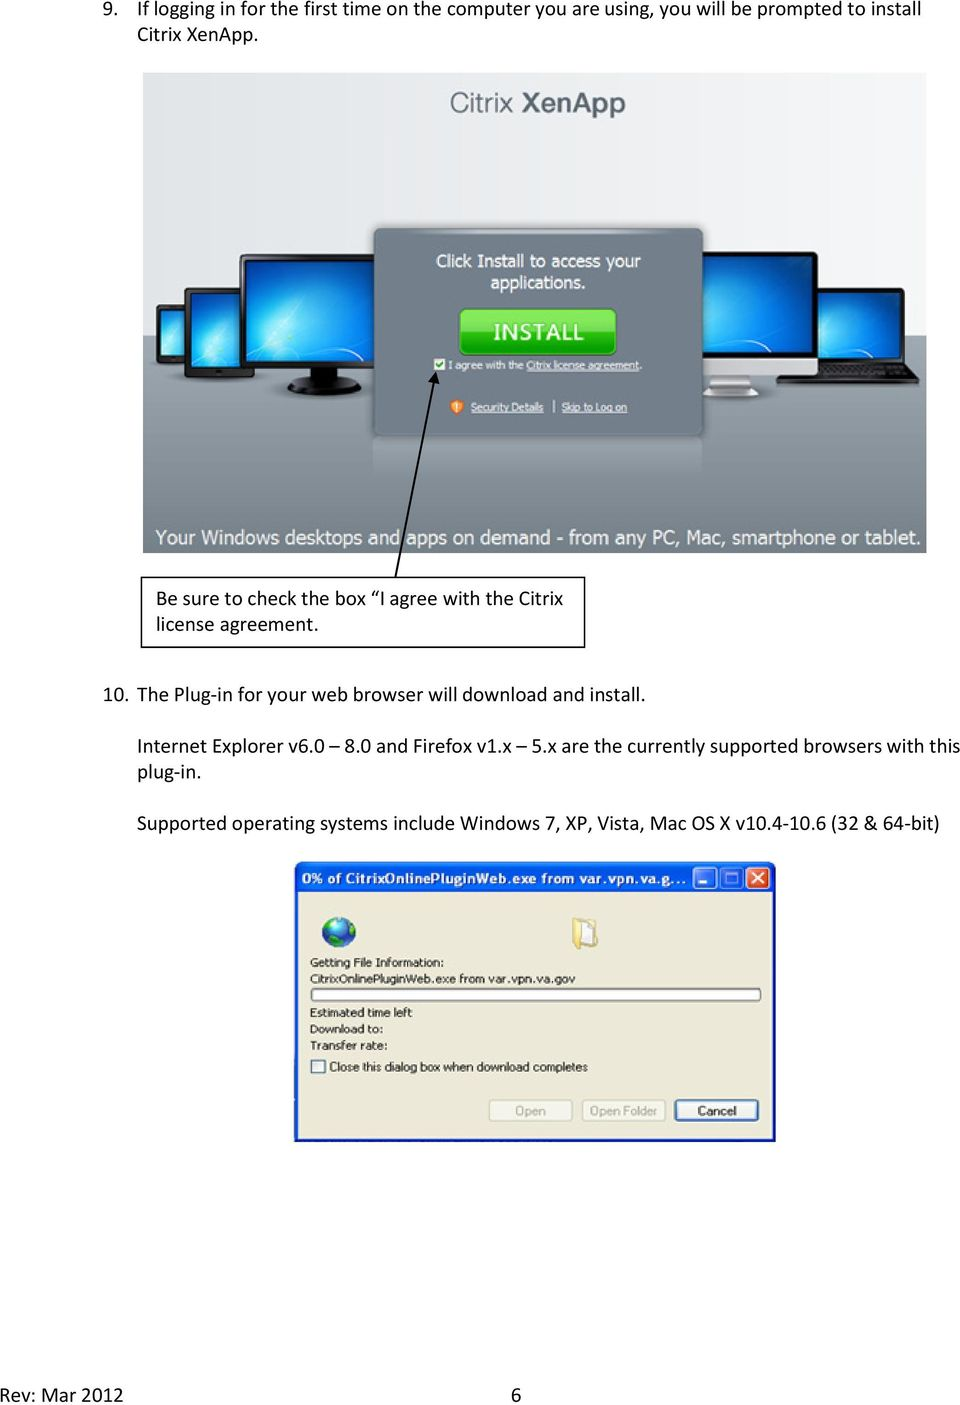 The Plug-in for your web browser will download and install. Internet Explorer v6.0 8.0 and Firefox v1.x 5.